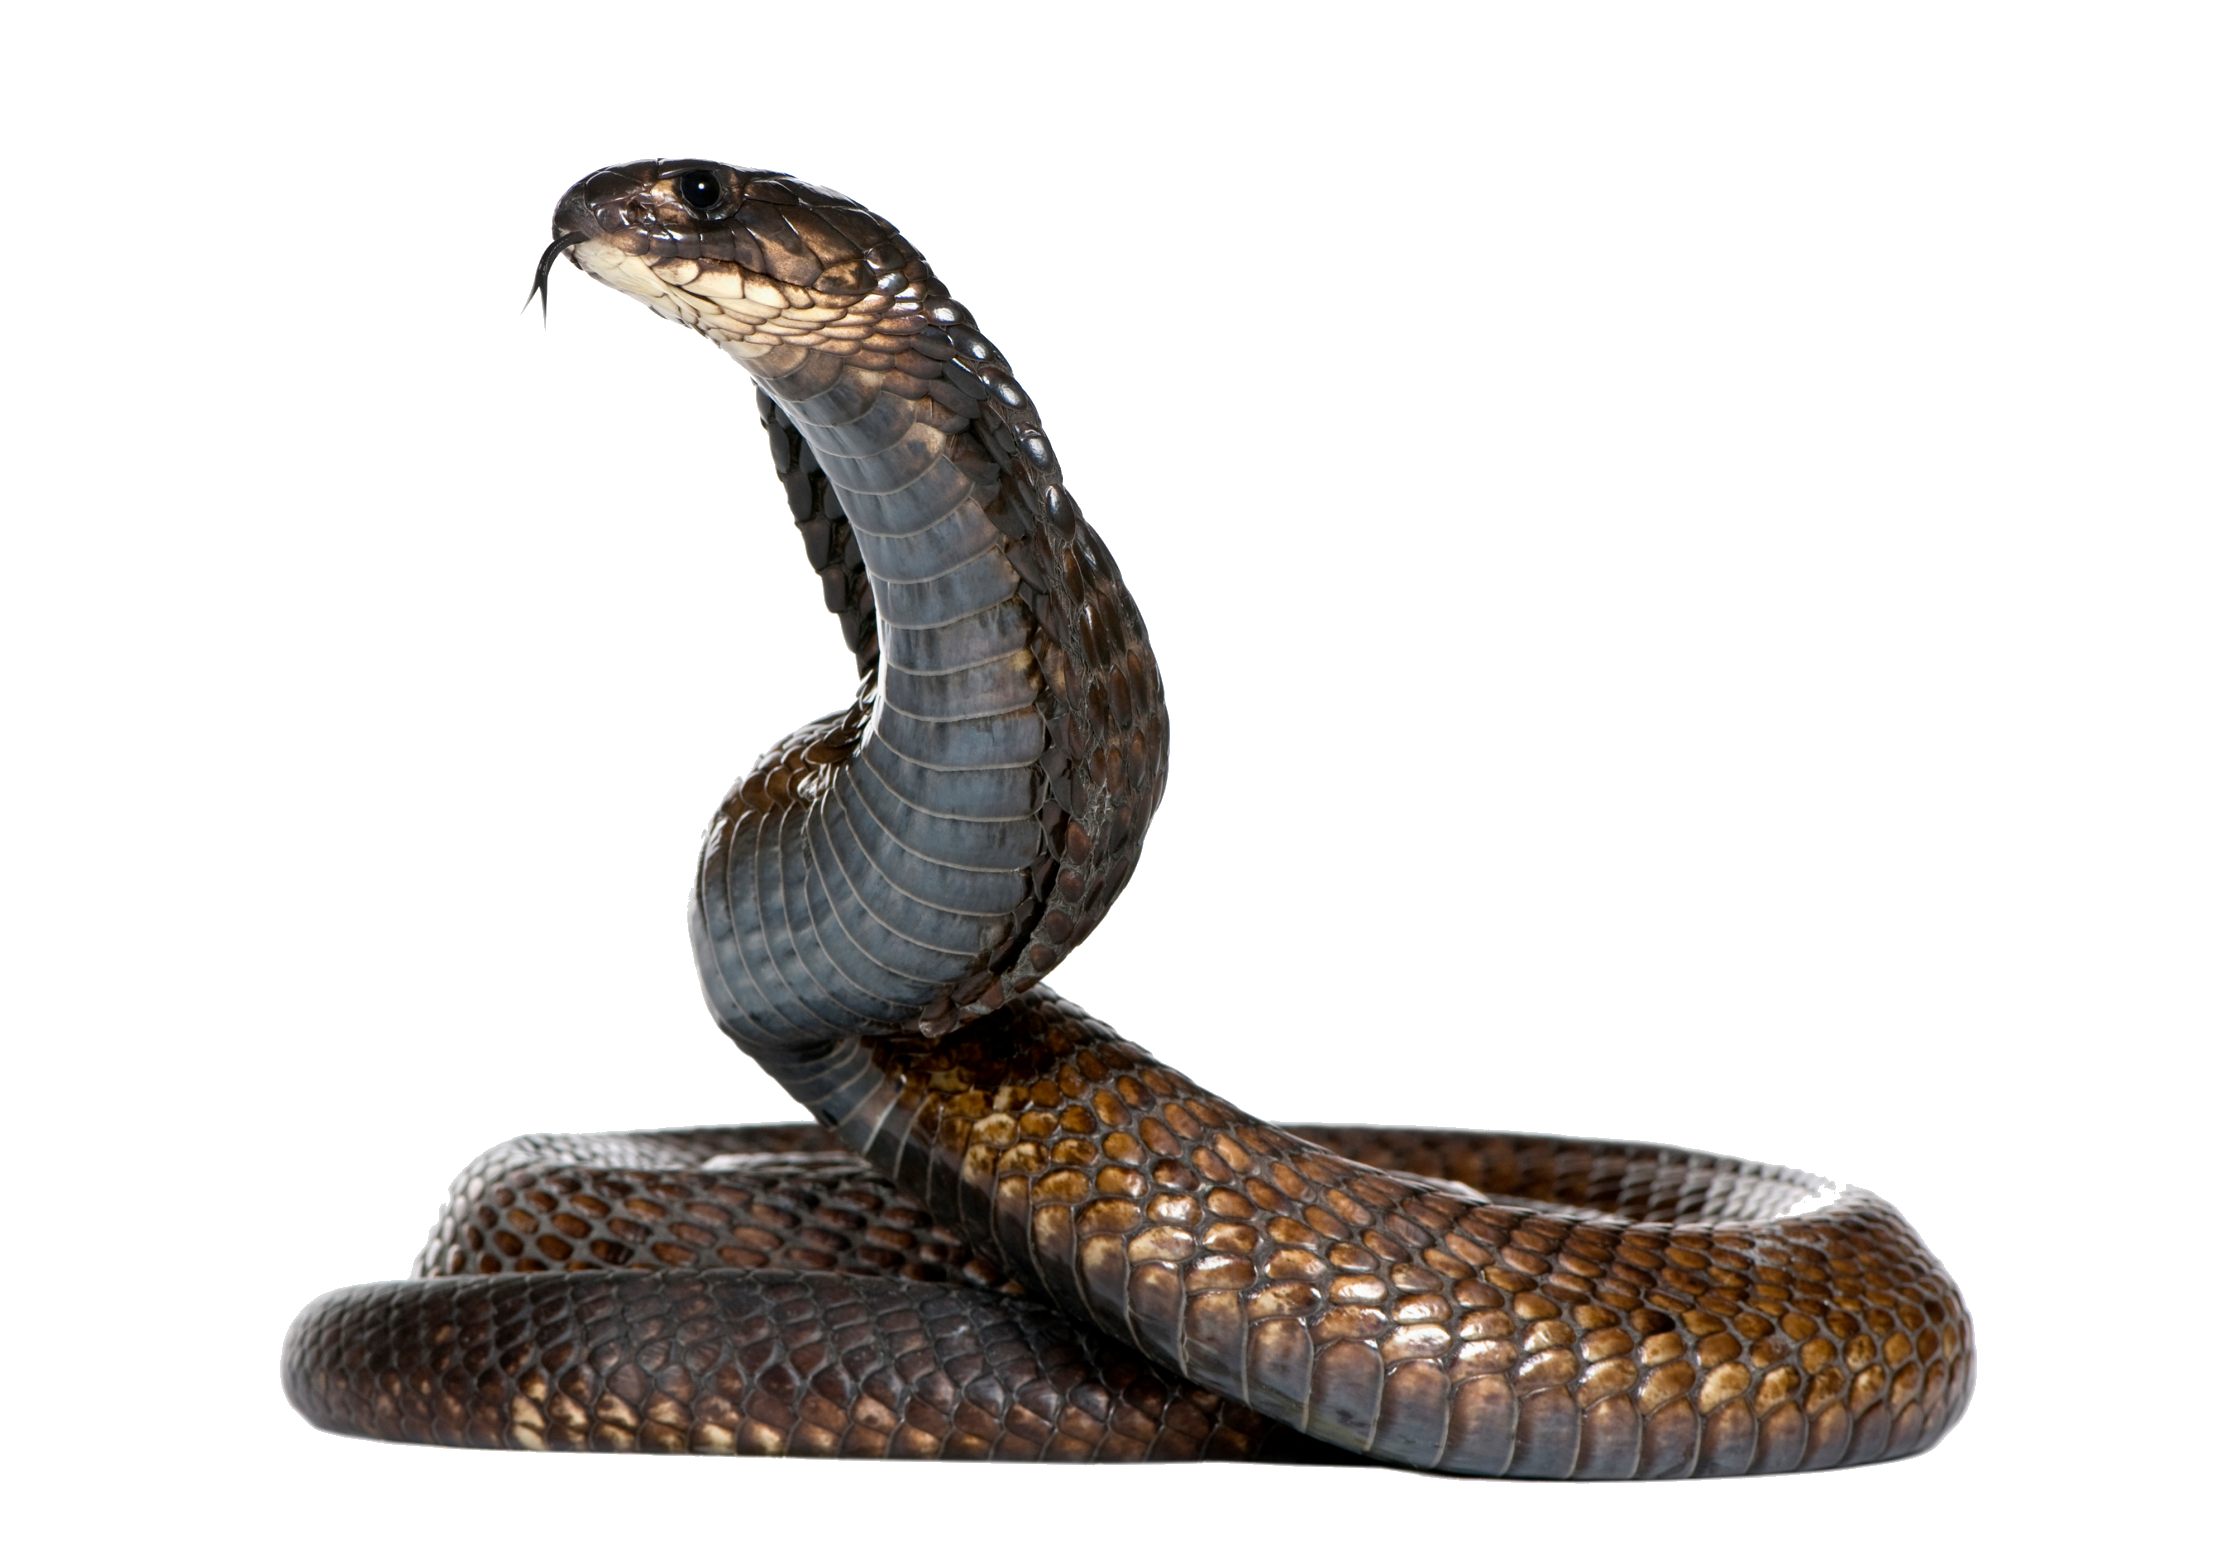 Snake clipart snack. Twenty two isolated stock